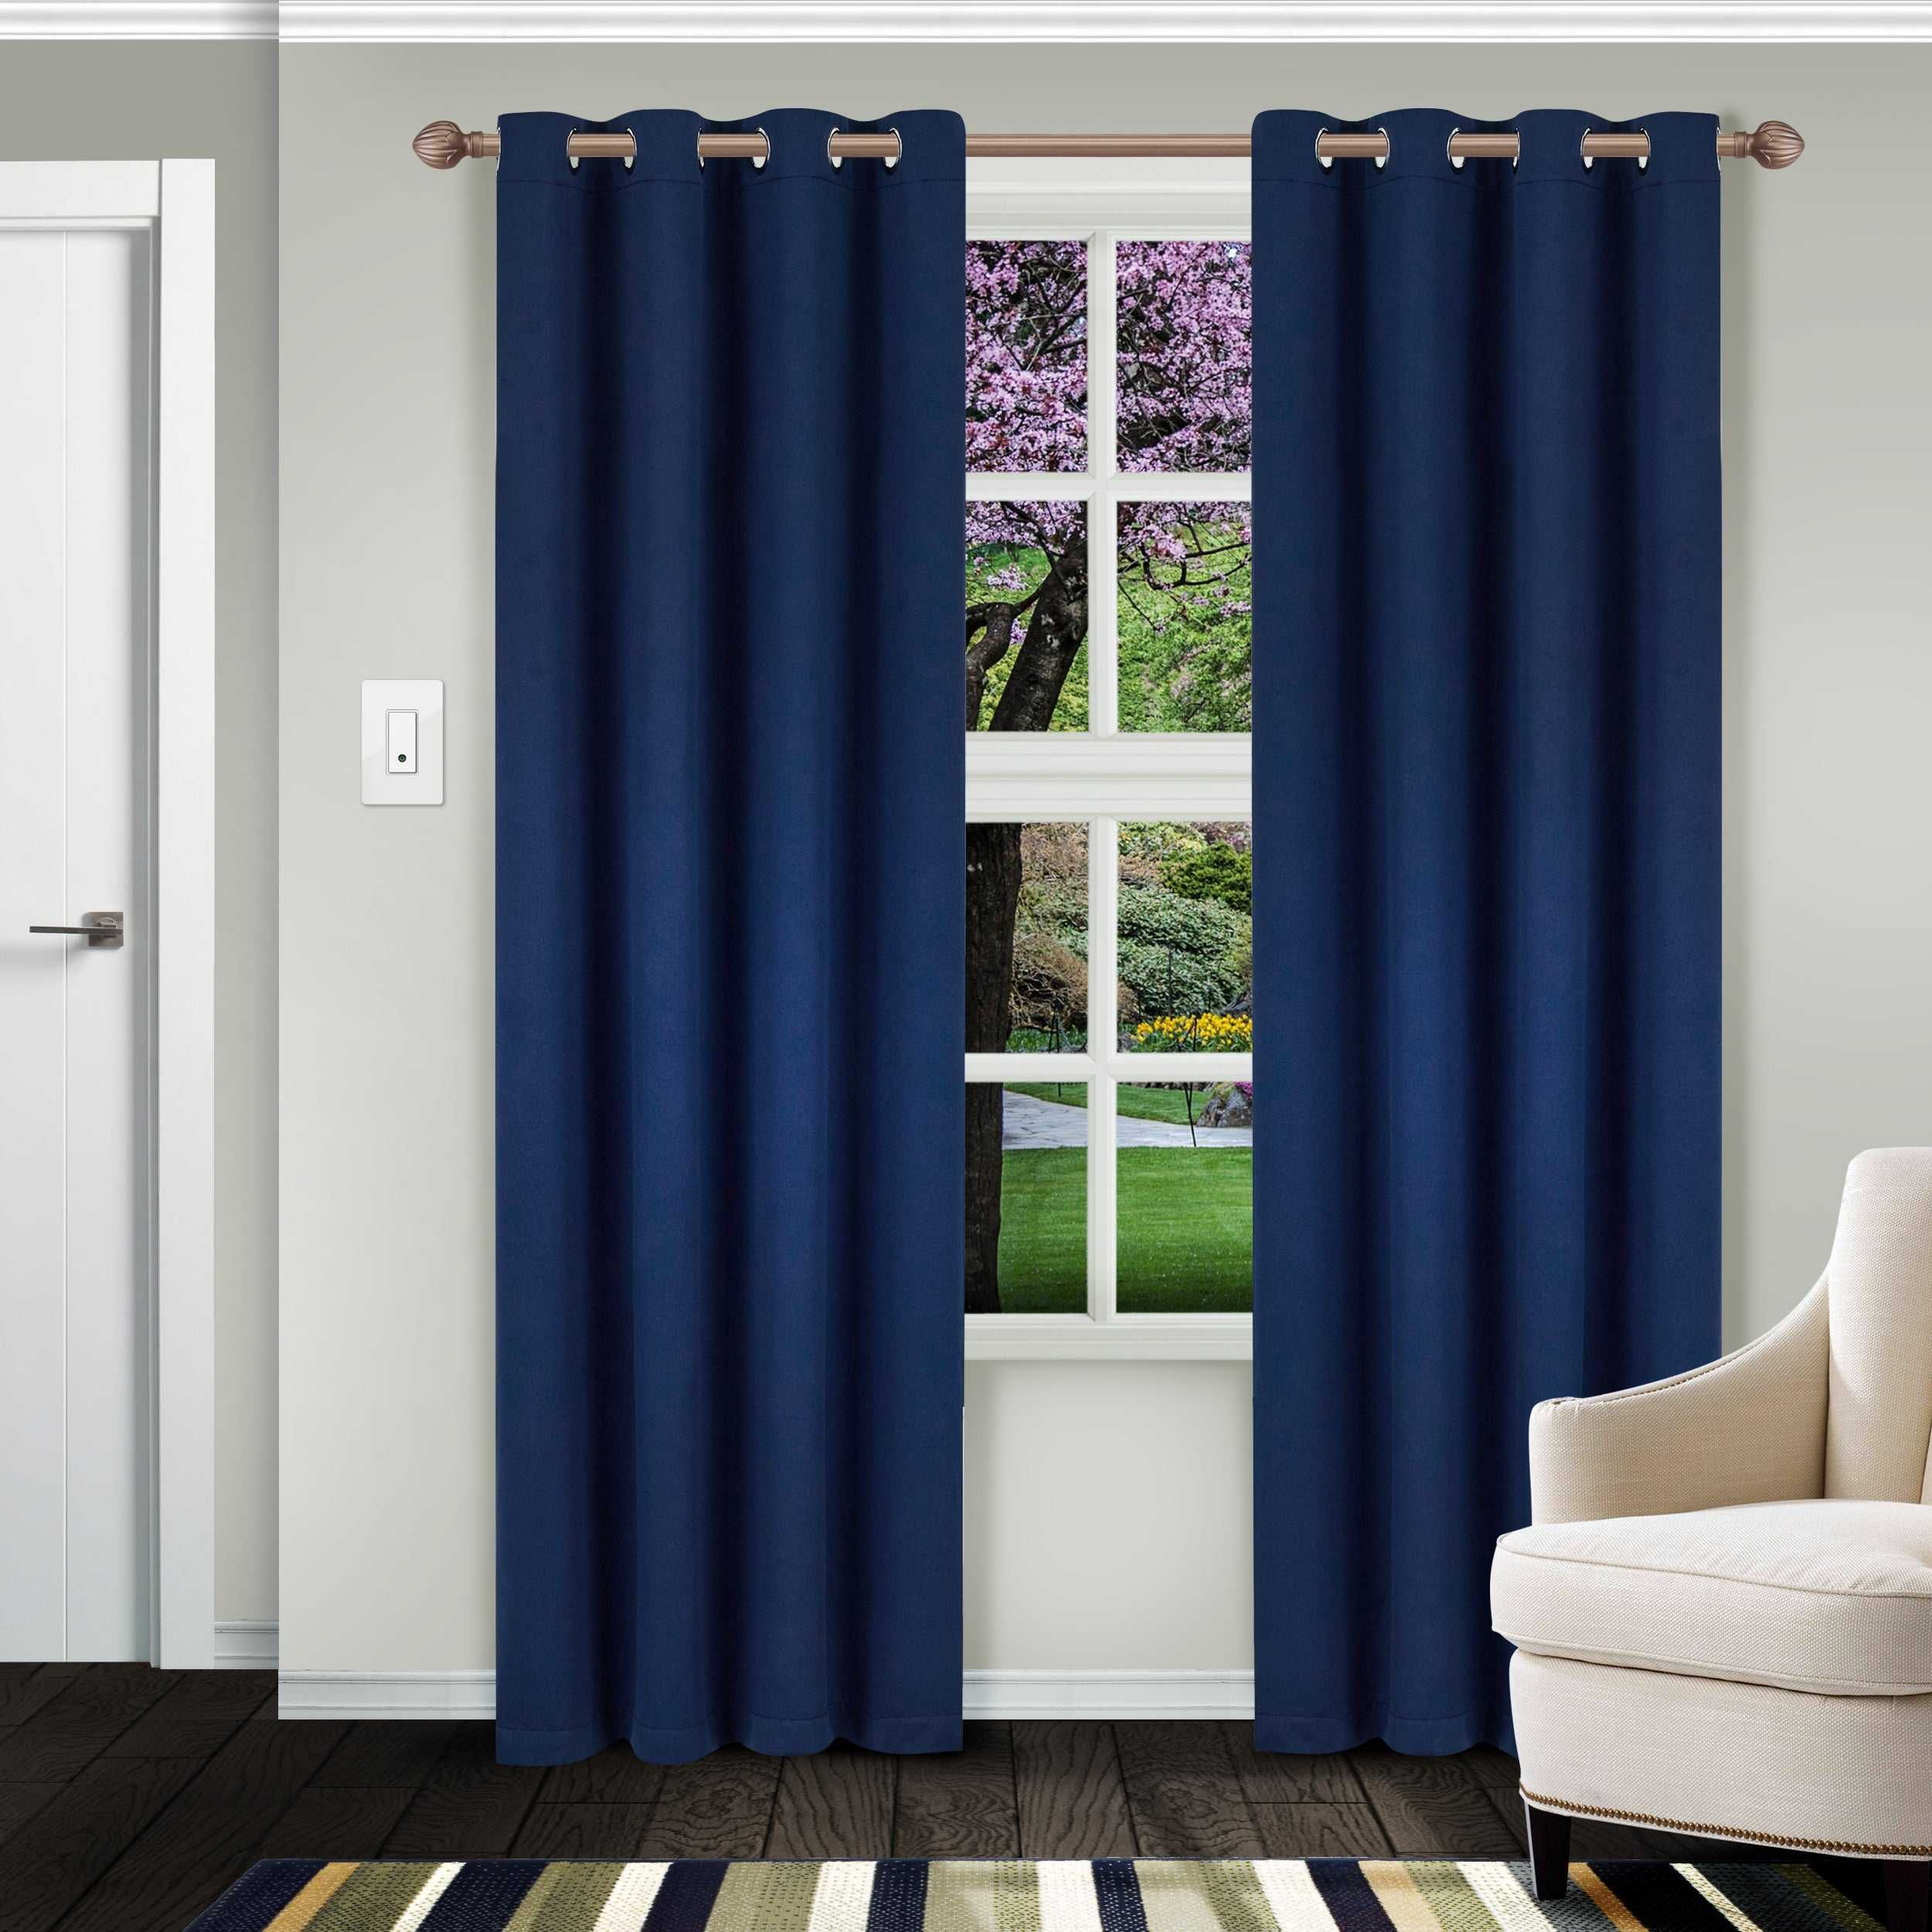 Superior Solid Insulated Thermal Blackout Grommet Curtain Panel Pair For Superior Solid Insulated Thermal Blackout Grommet Curtain Panel Pairs (View 2 of 30)